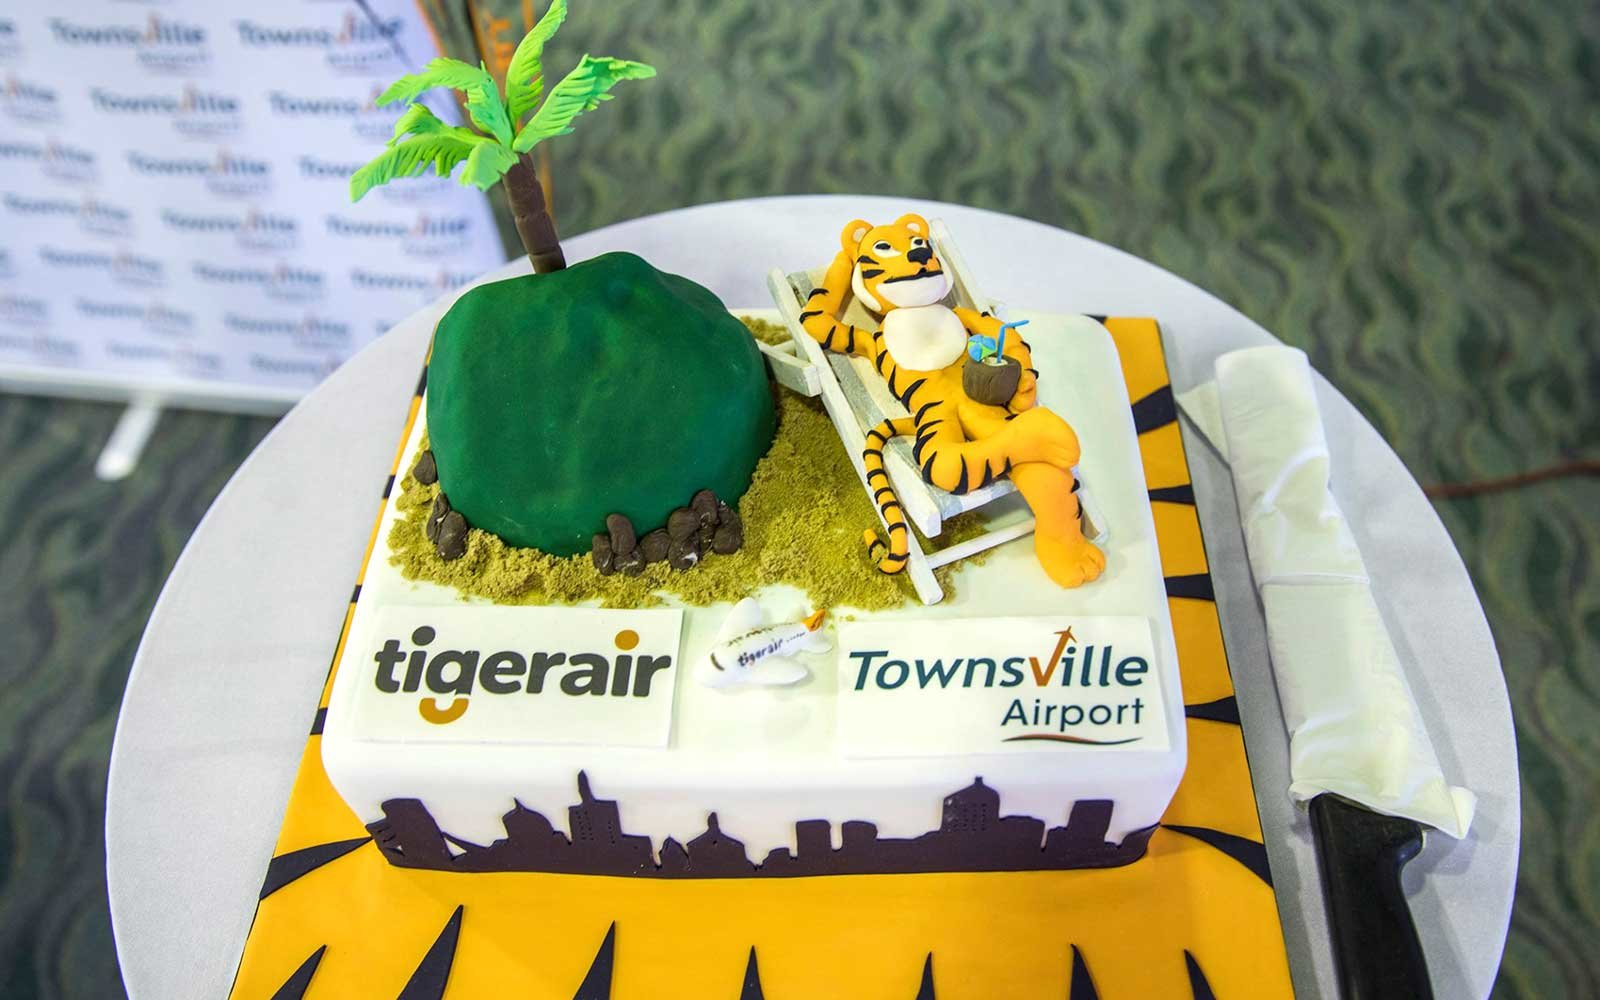 Airlines Celebrate New Routes With Cakes And Theyre Incredibly